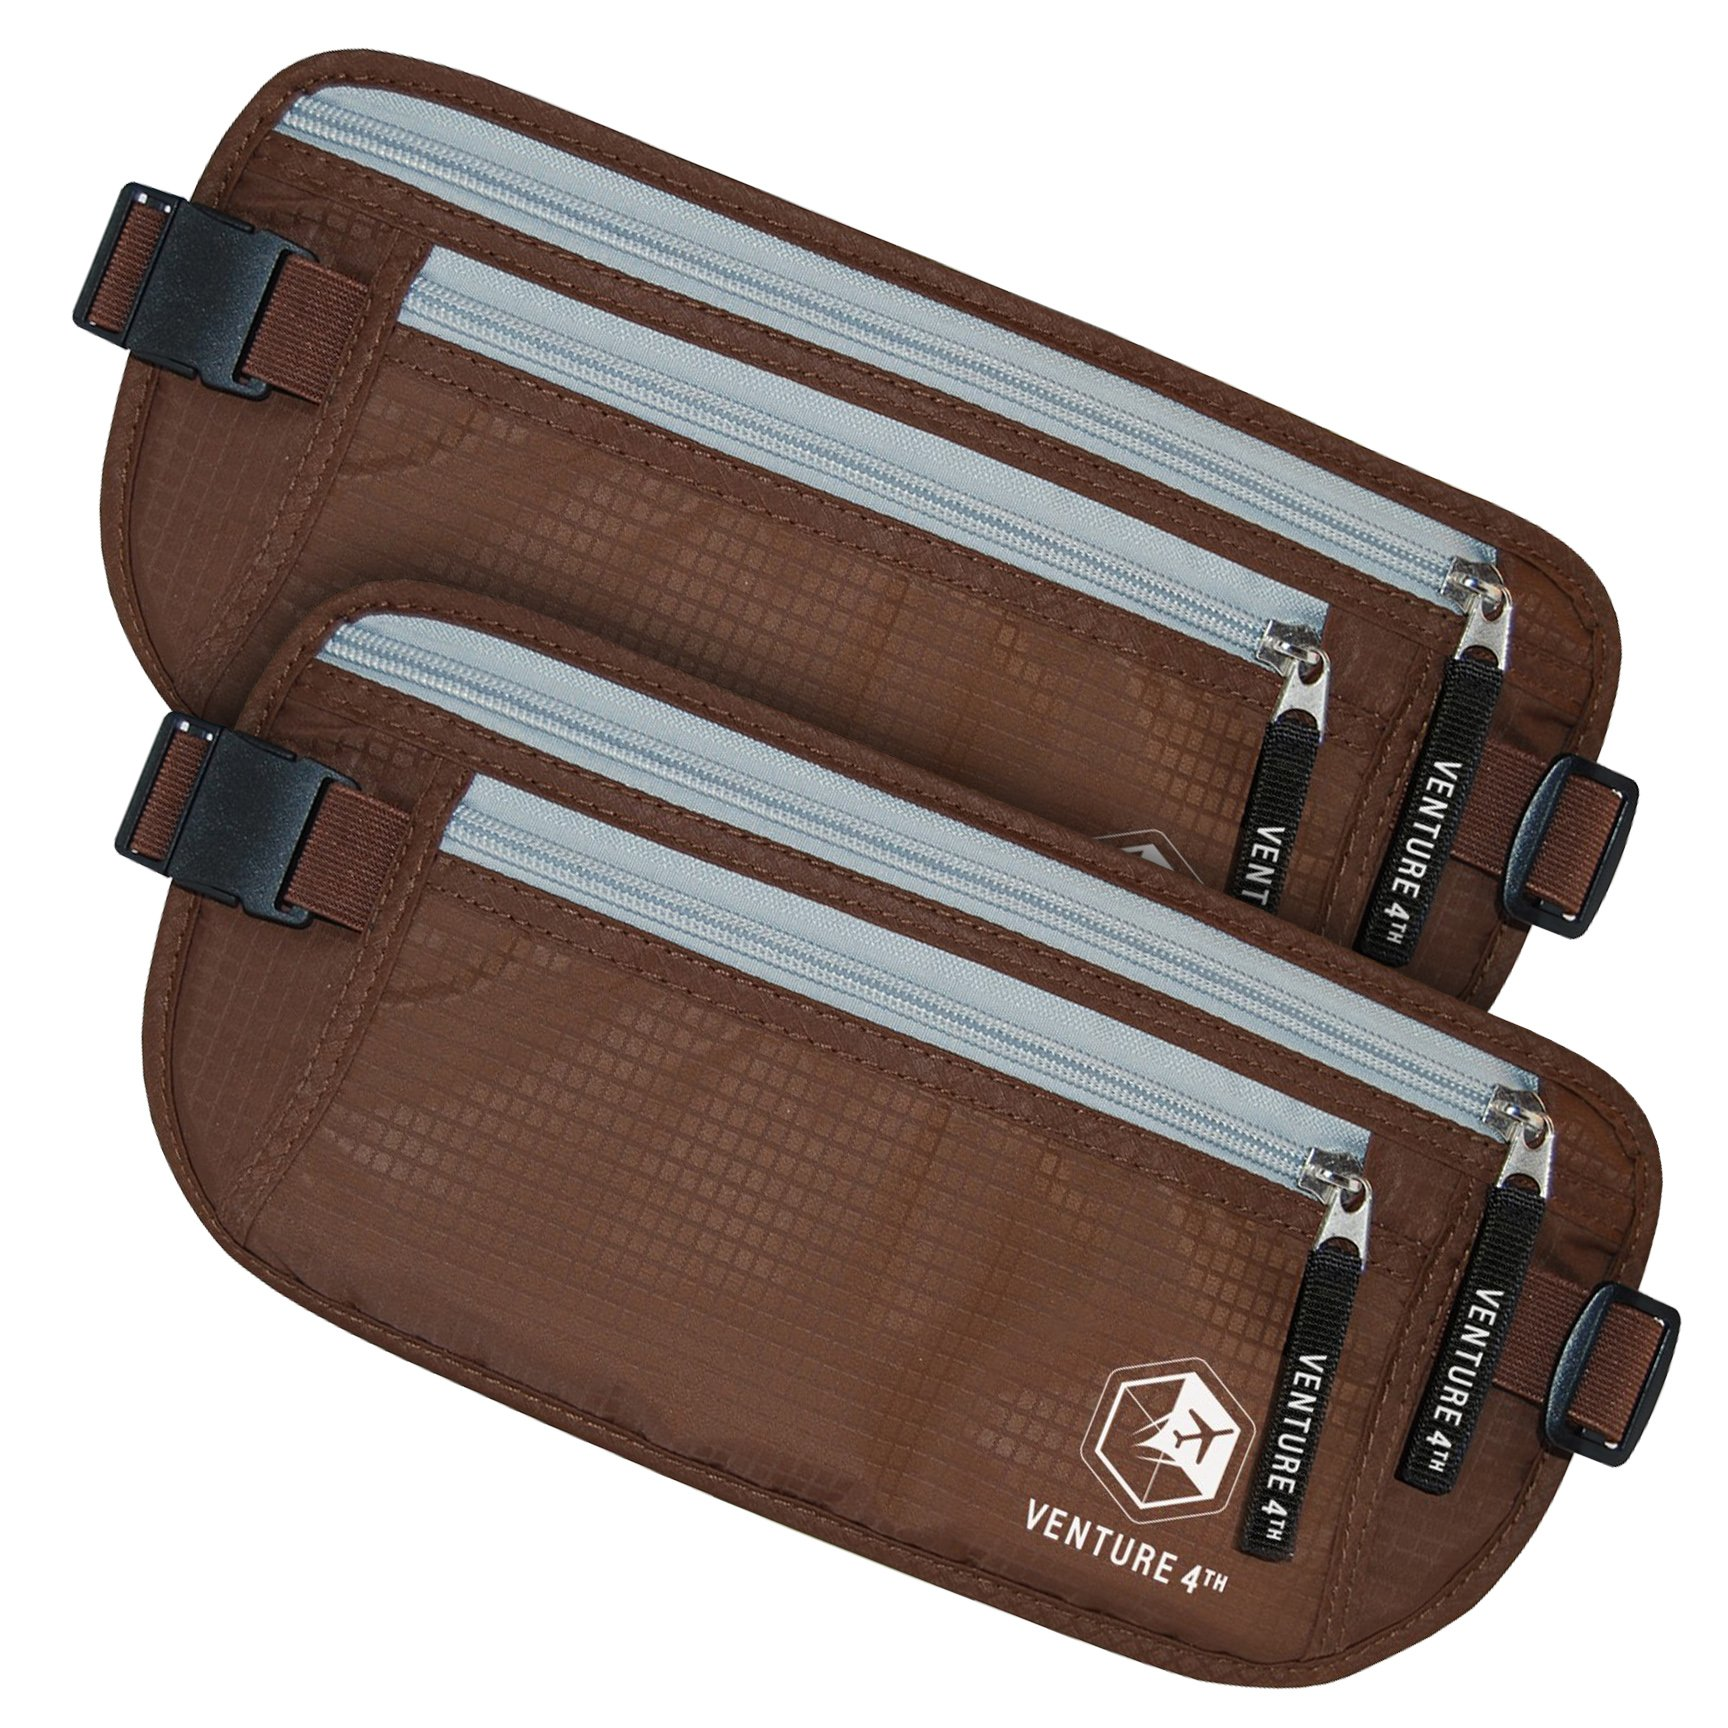 Travel Money Belt - Keeps Your Cash Safe When Traveling - Hidden Waist Passport Holder With RFID Blocking Is Designed For Superior Anti-Theft Protection and Comfort Twin Pack (Brown + Brown)